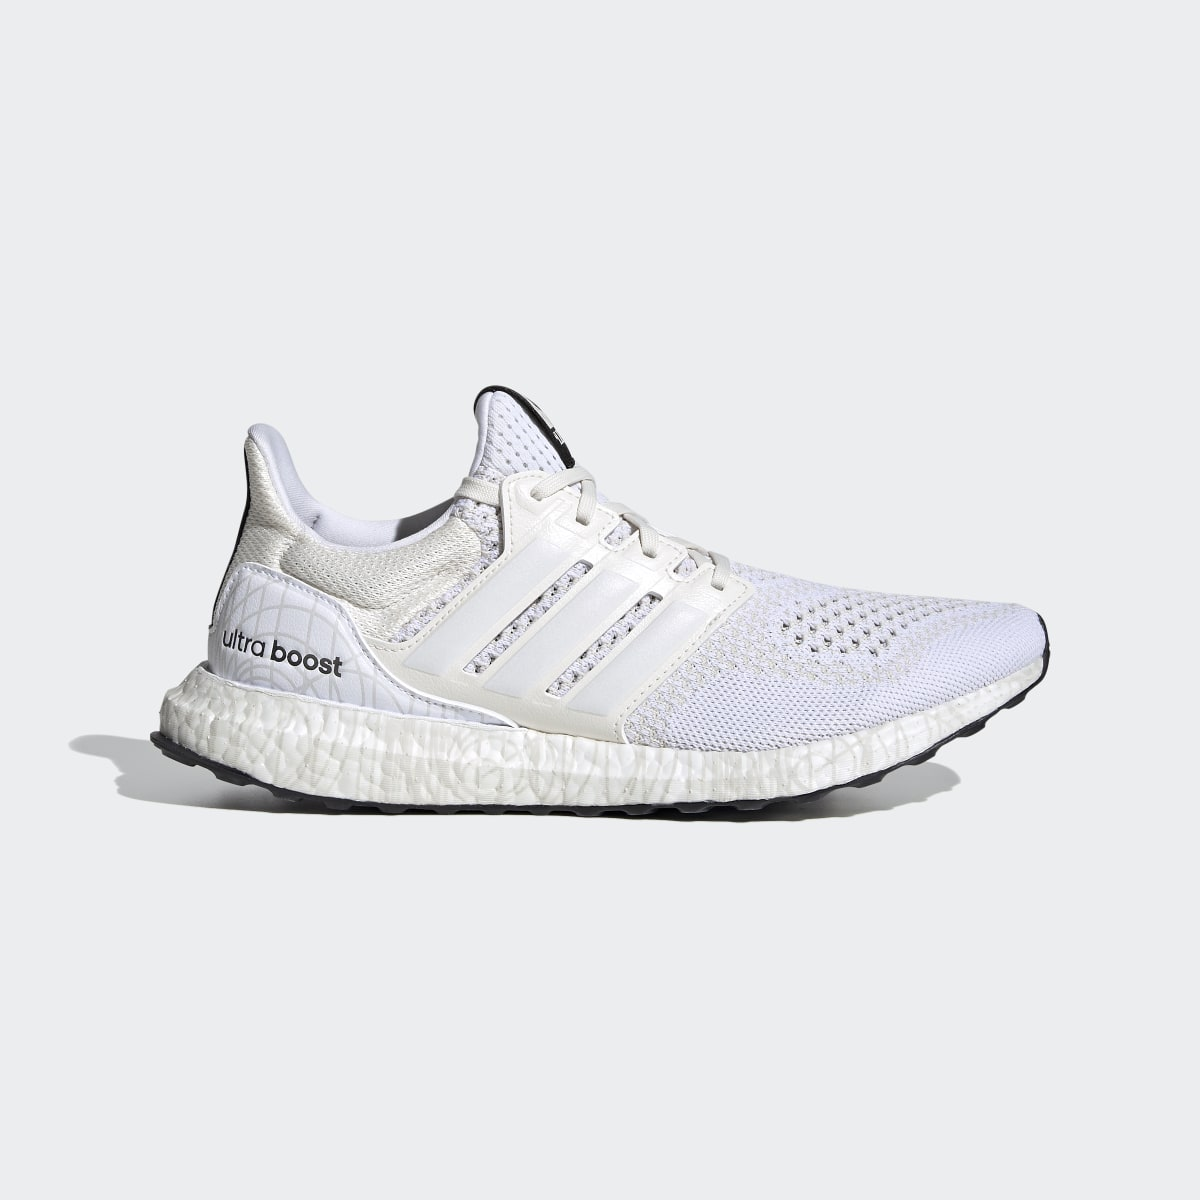 Ultraboost DNA Princess Leia Shoes